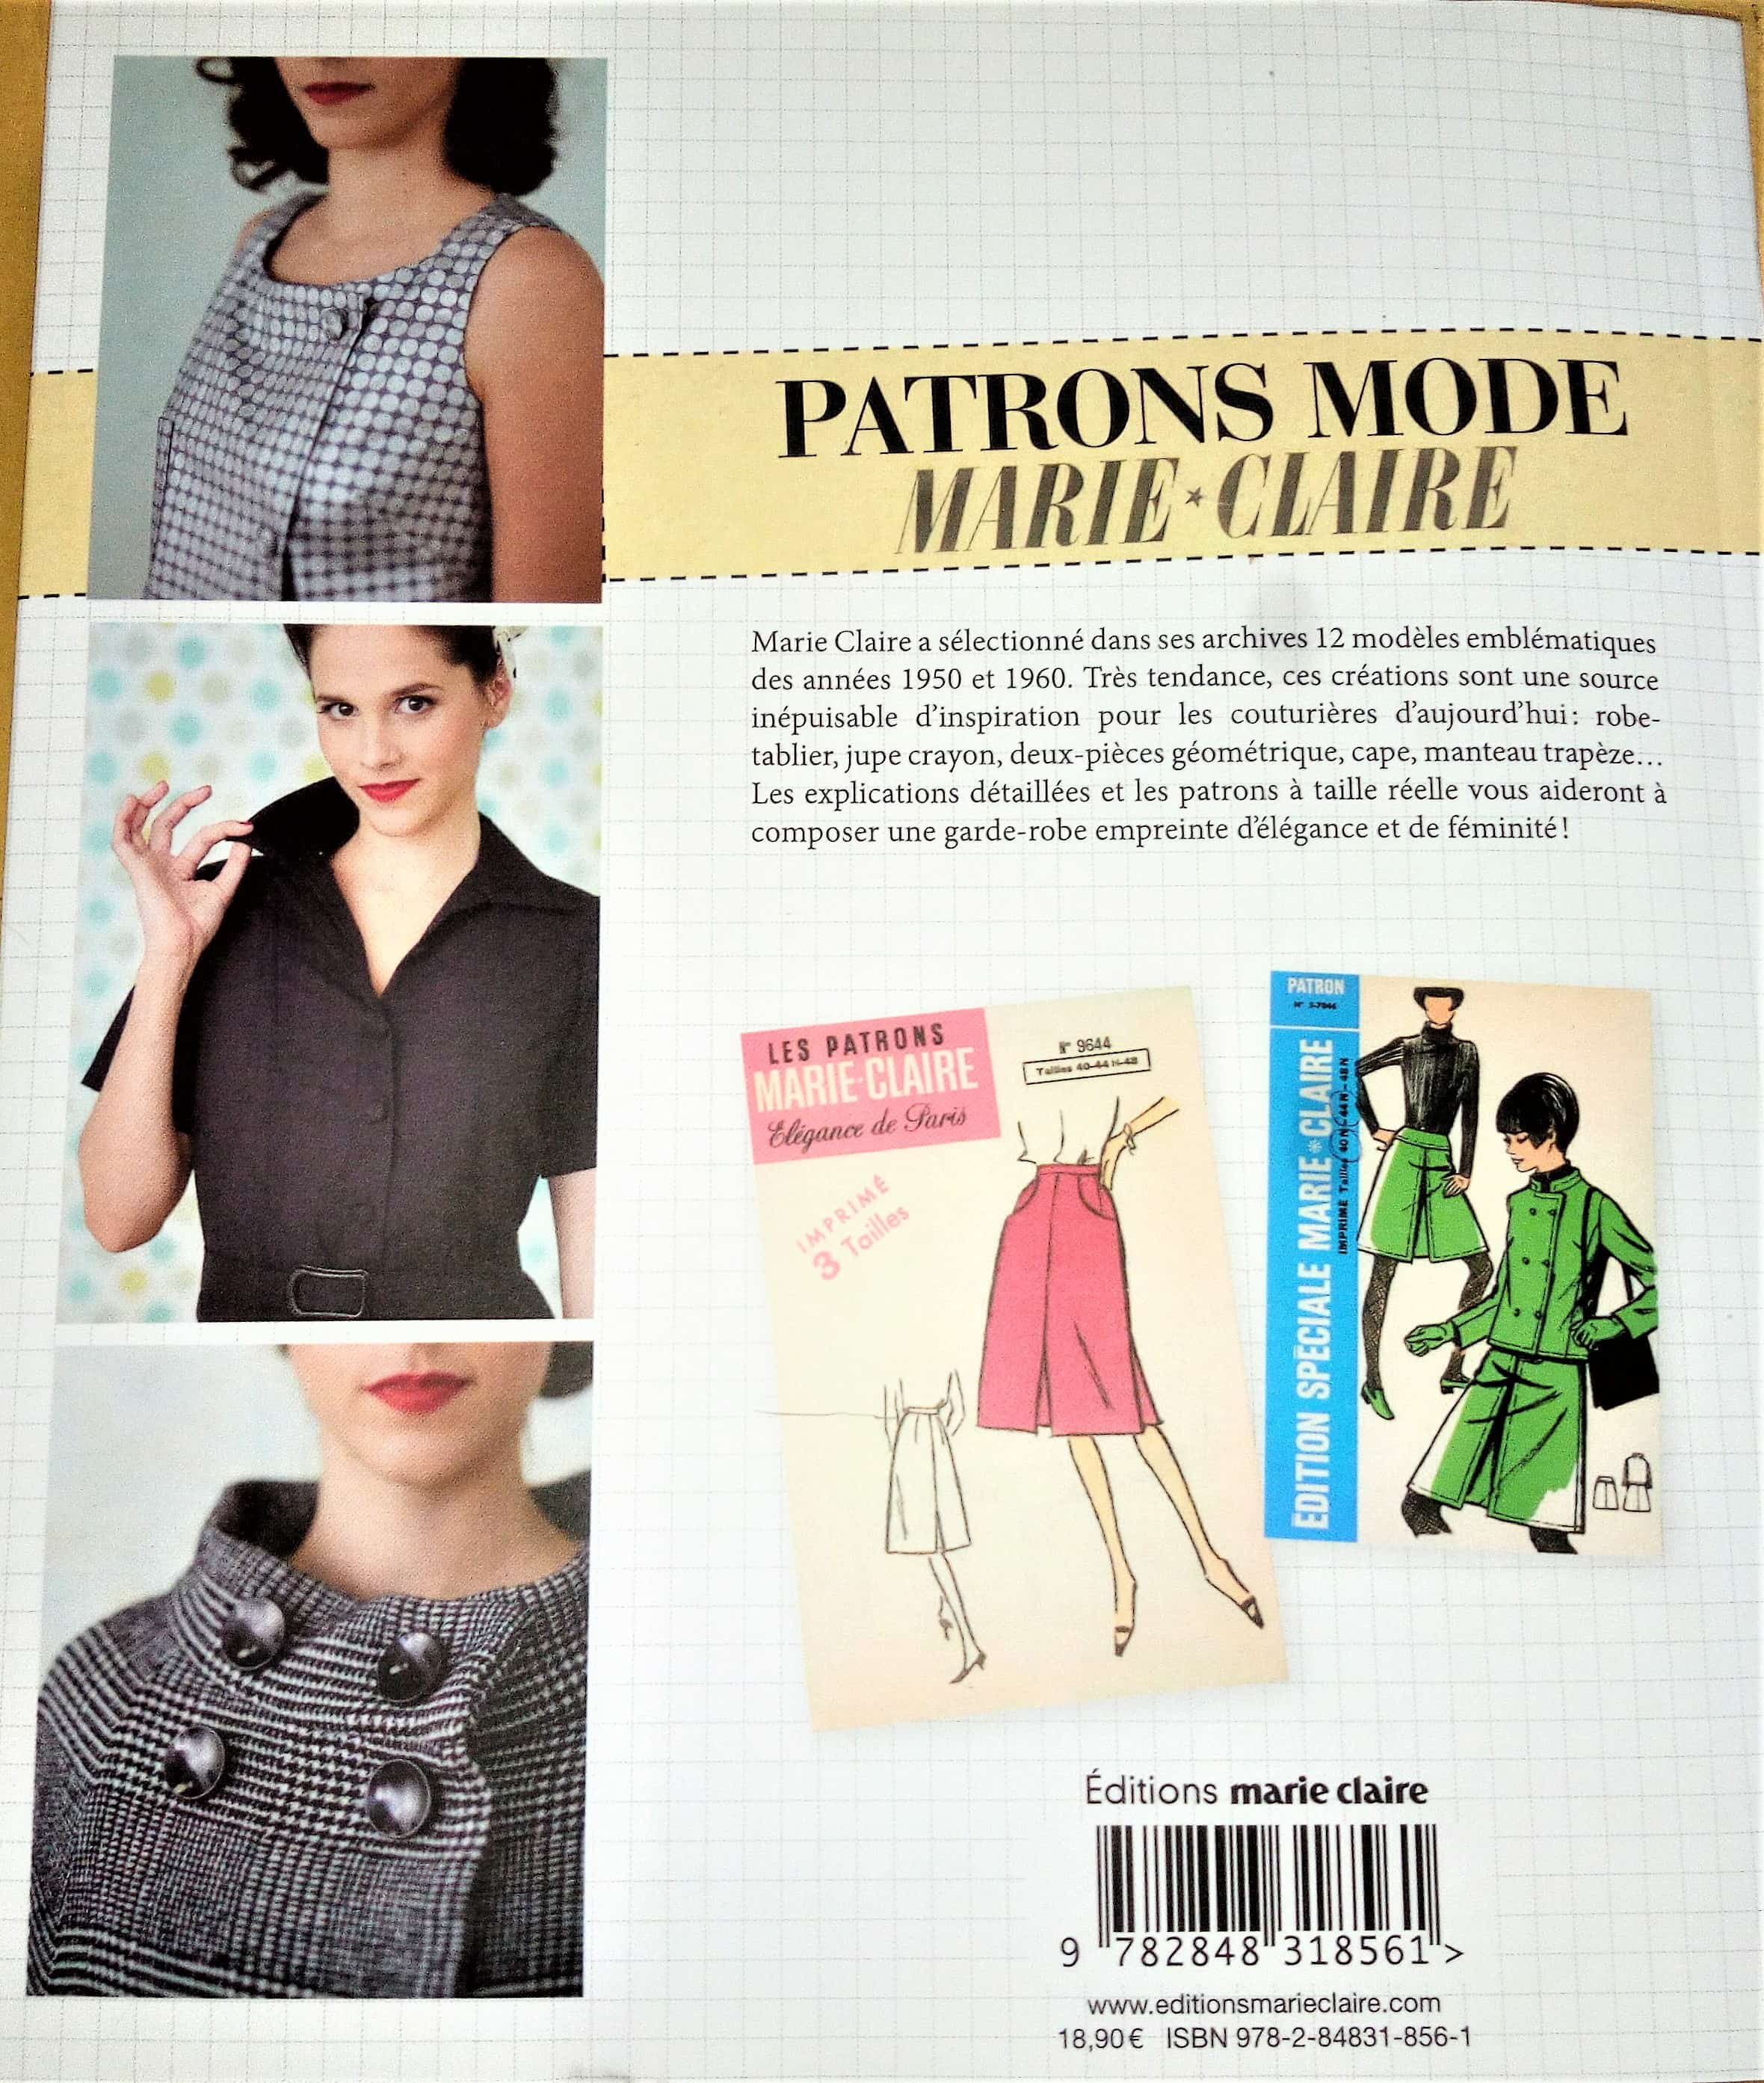 Patrons Mode Marie-Claire\